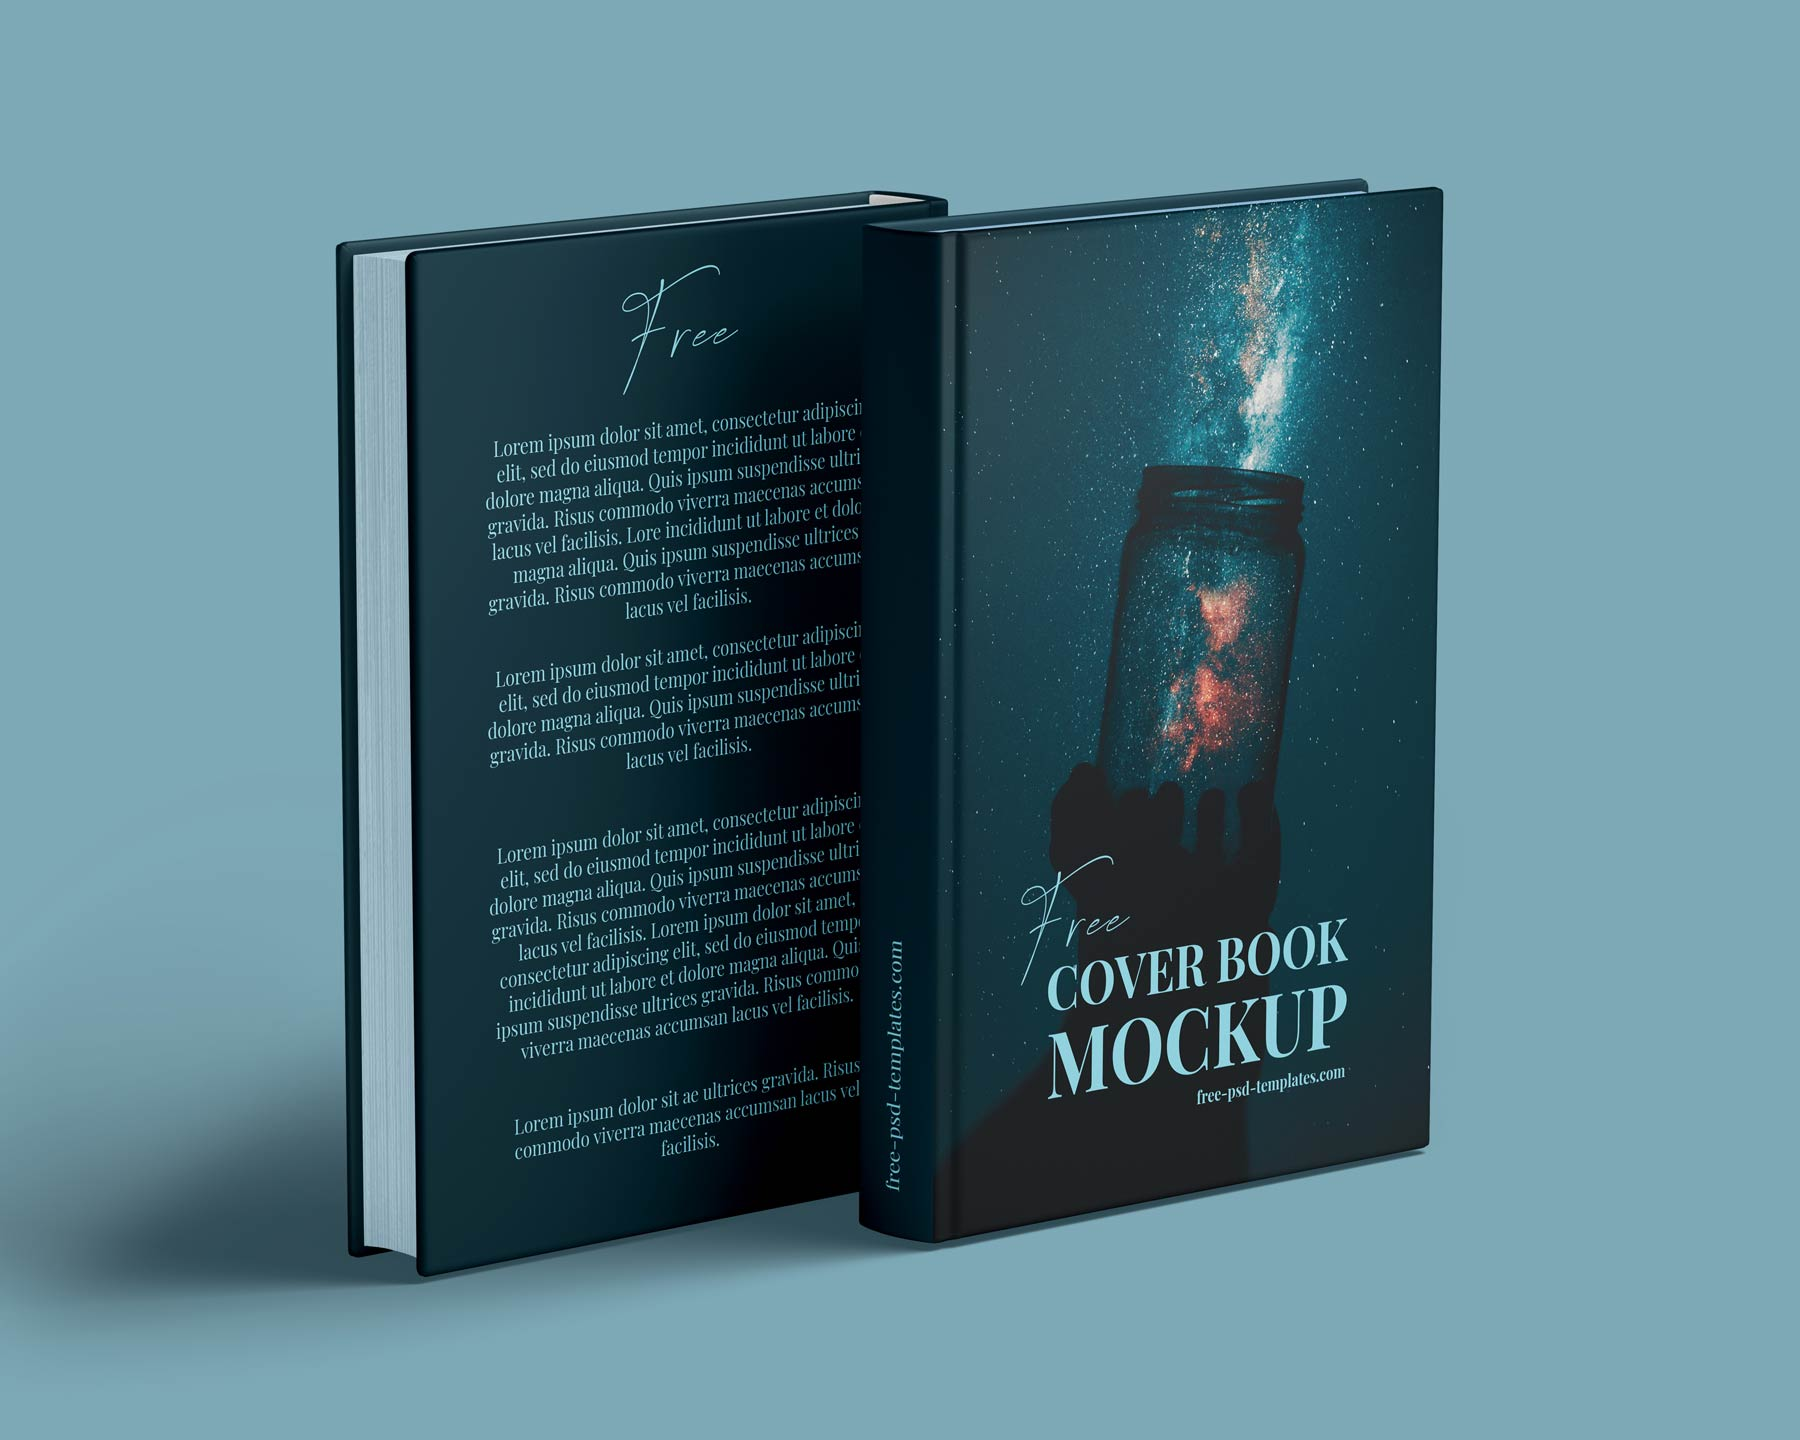 standing front and back of hardcover book mockup